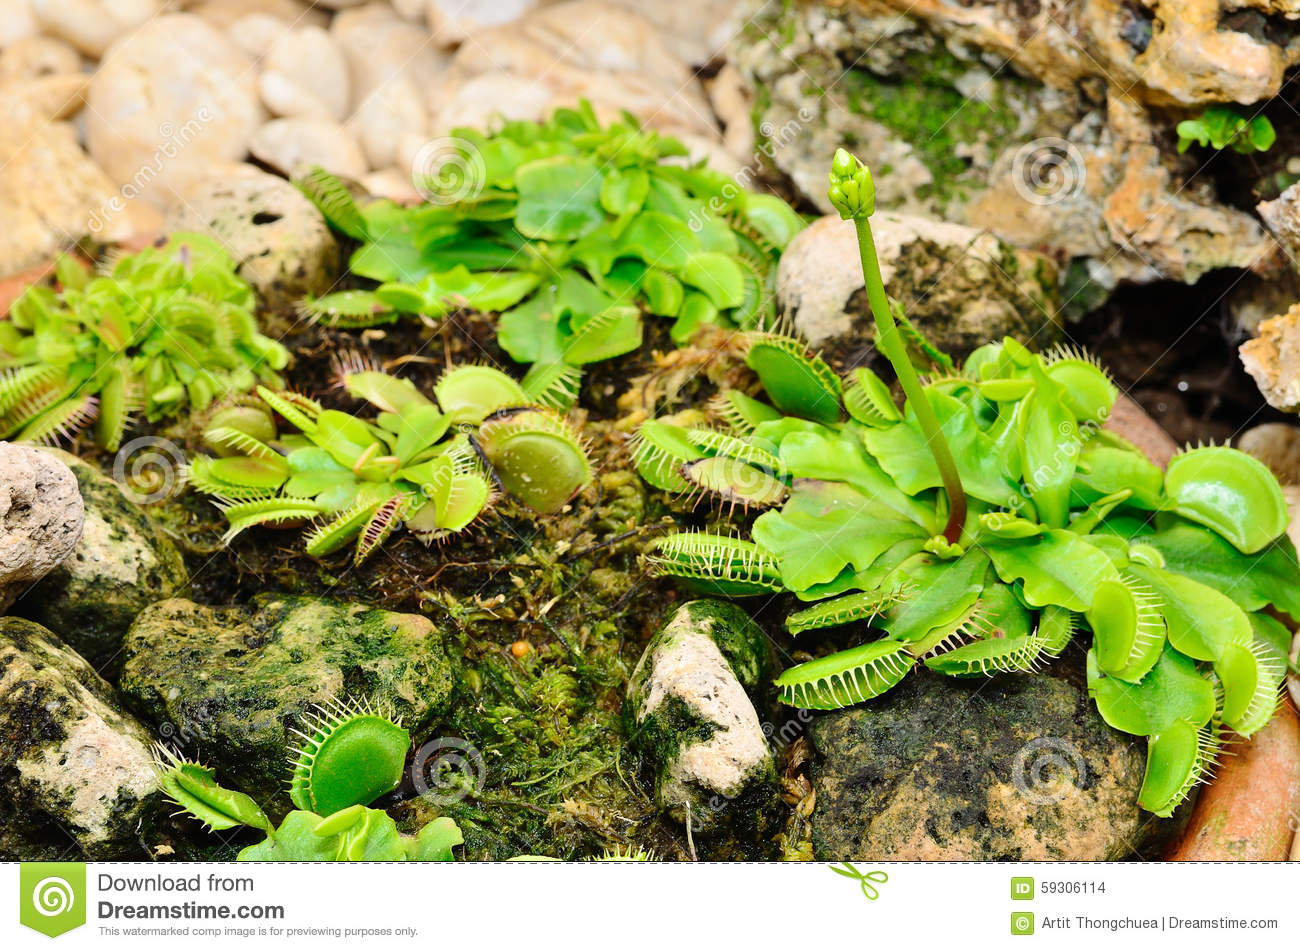 Venus Flytrap Or Carnivorous Plant Stock Photo Image Of Insectivorous Nature 59306114